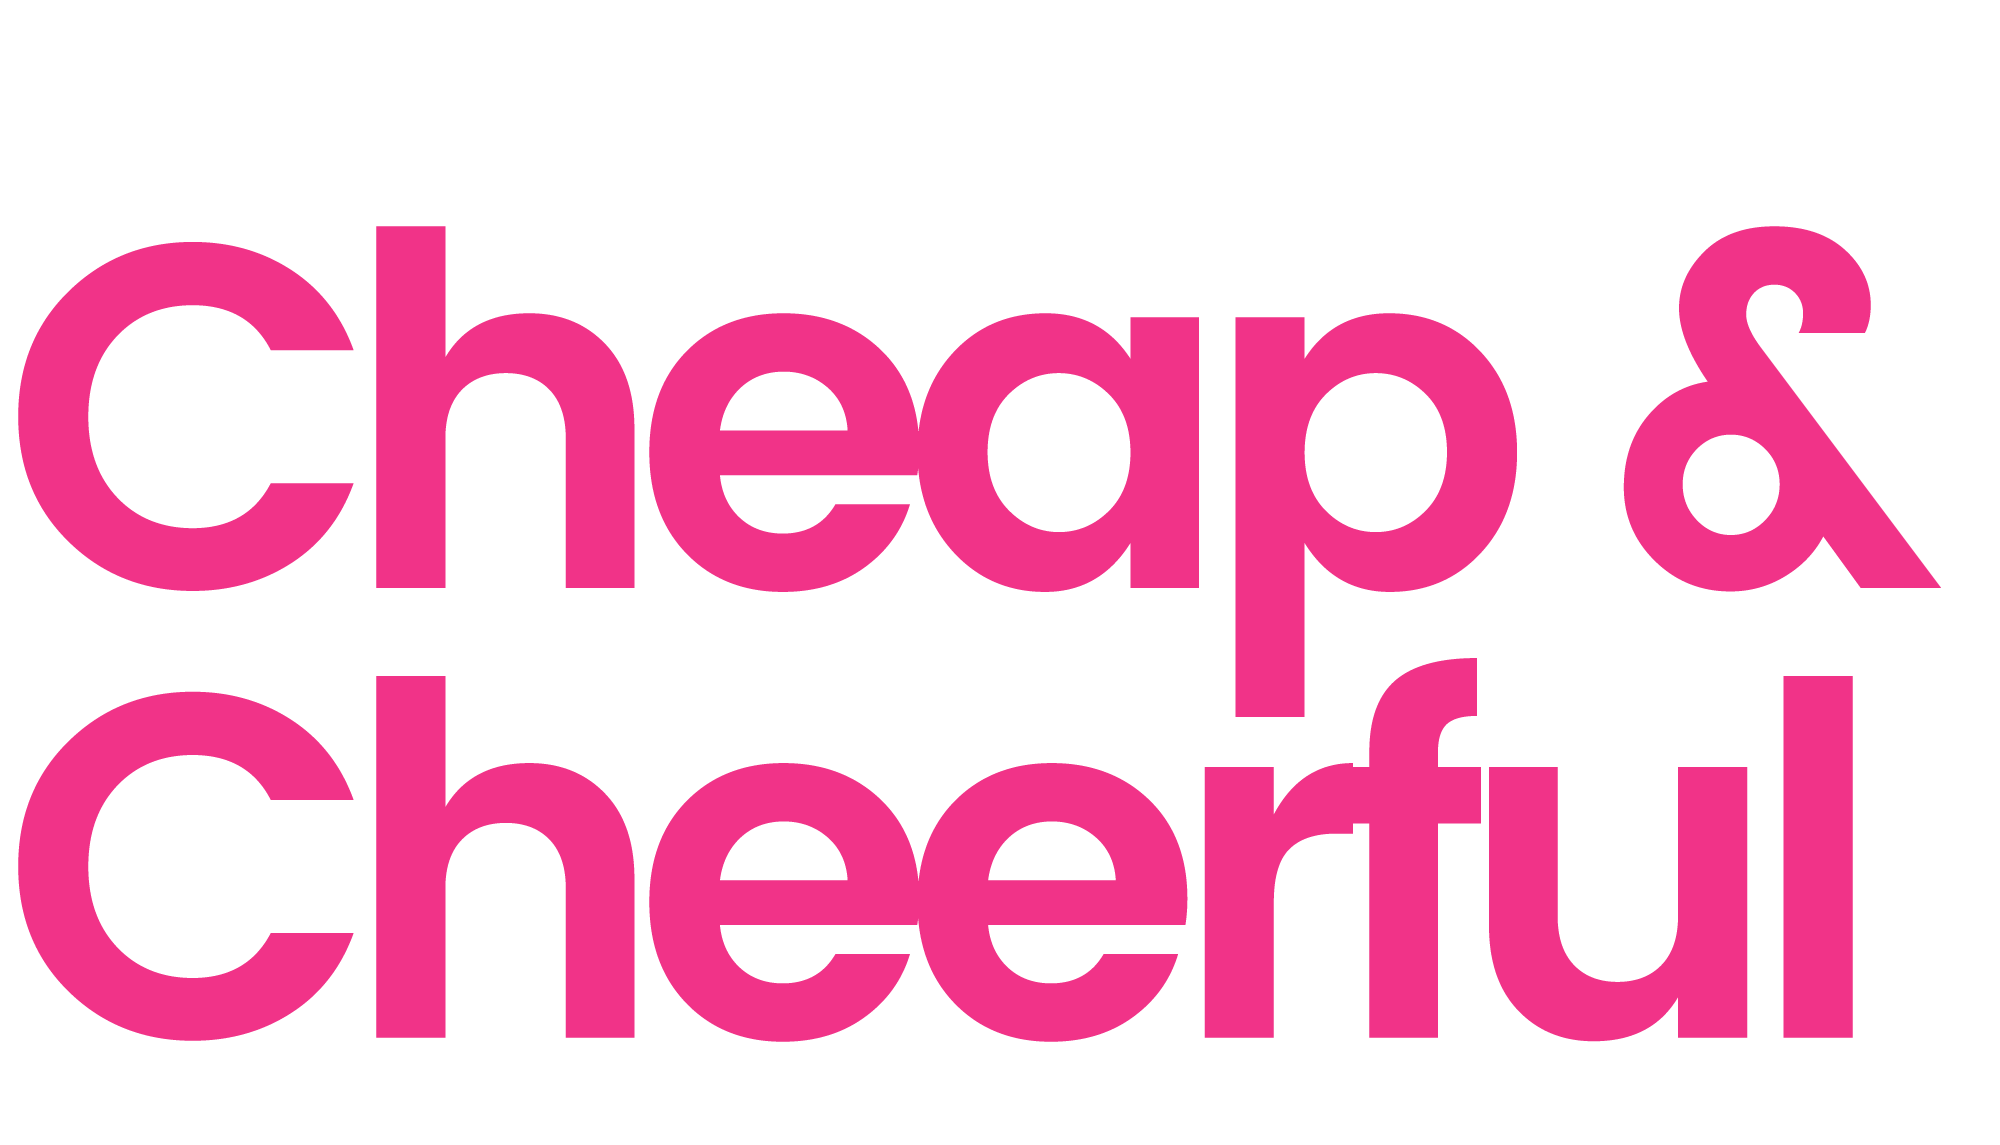 Cheap & cheerful economy calendars